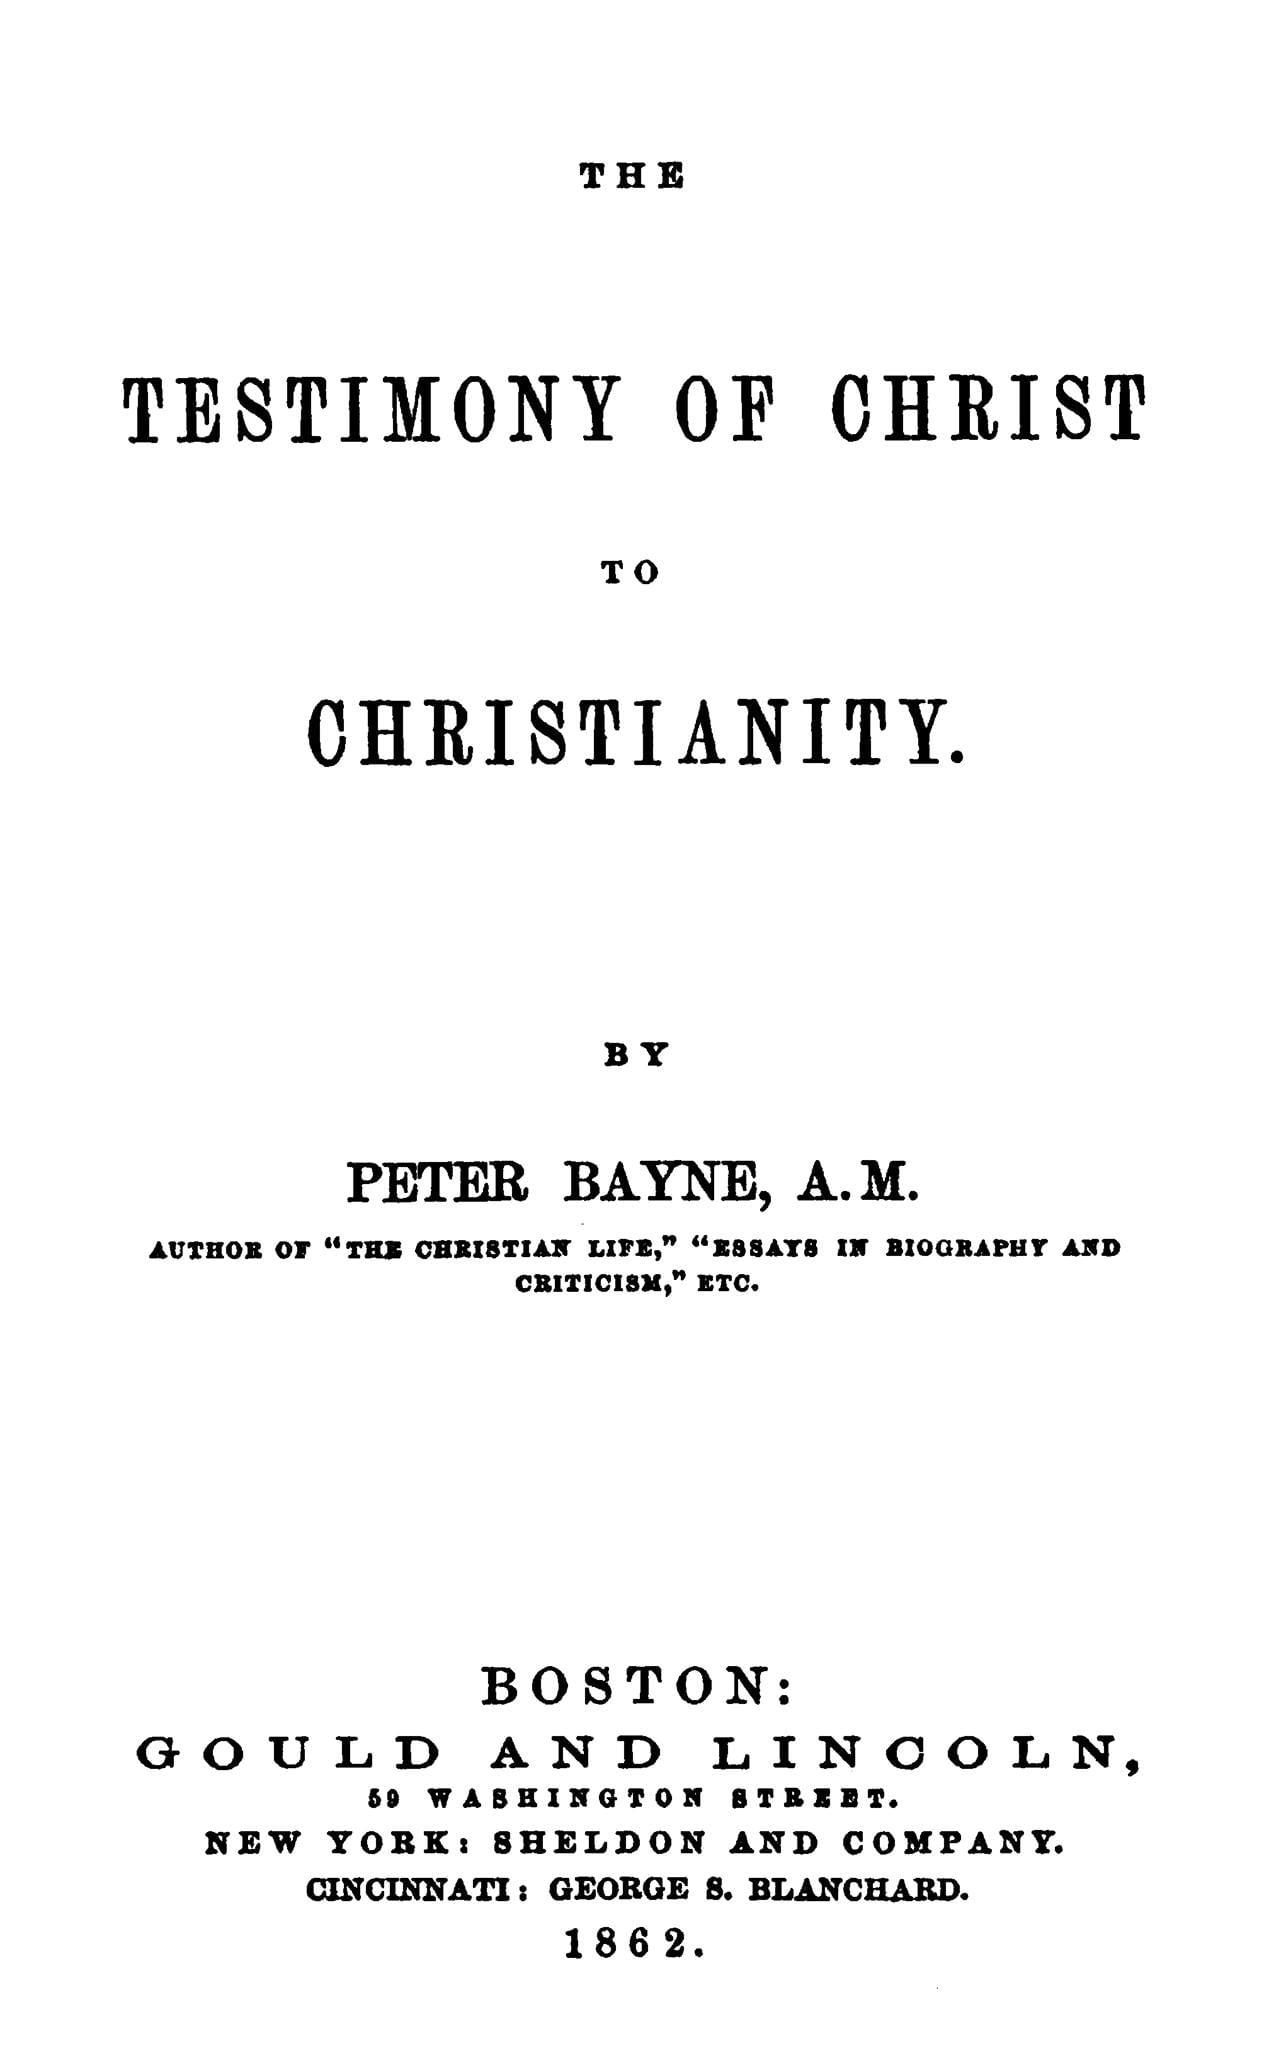 the illegal proceeding of christs trial essay Appendix b:profane oaths and unlawful oaths  the accused,  having been convicted of assault on summary trial on the basis of unsworn  the  practice of administering an oath in judicial proceedings is rooted in the ancient   a clear condemnation of oath taking generally is expressed by christ in  matthew 5:.